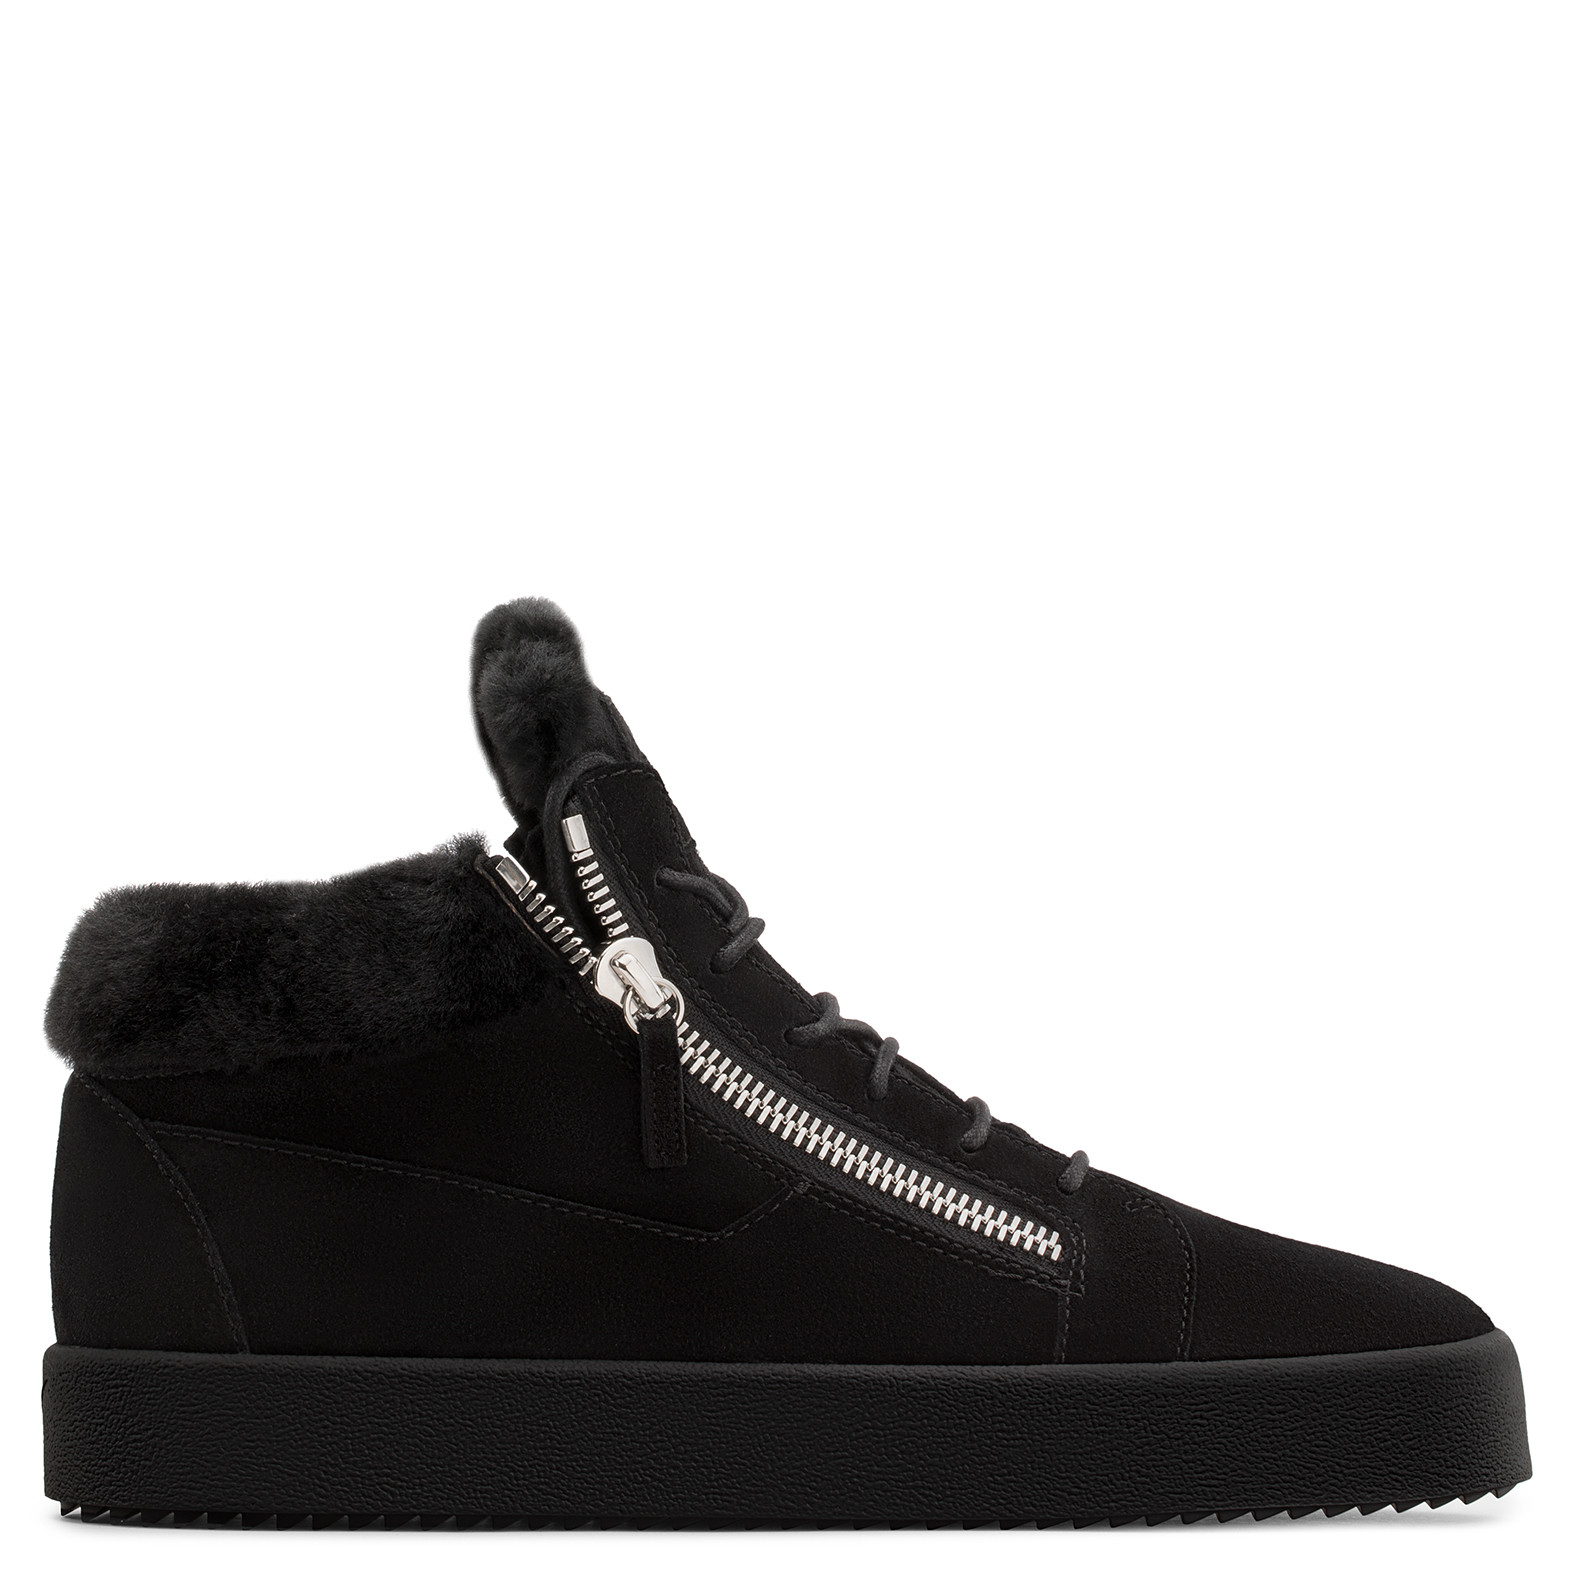 Giuseppe ZanottiUnfinished Collection: Dark mid-top sneaker THE UNFINISHED YjVgCnU